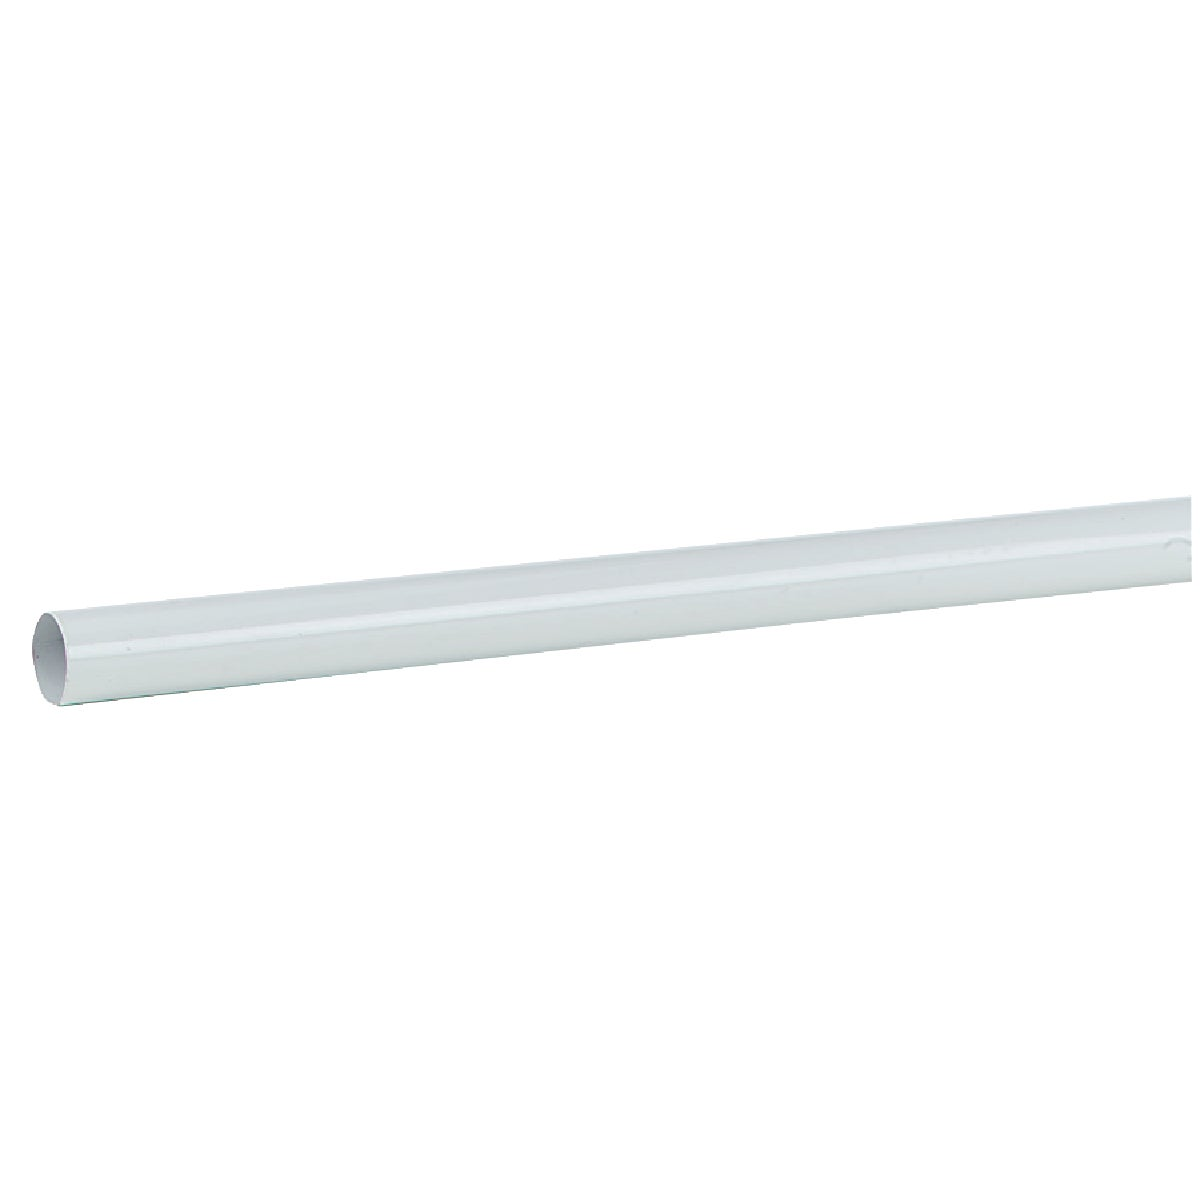 4' WHITE CLOSET POLE - 0018-4 by Knape & Vogt Mfg Co